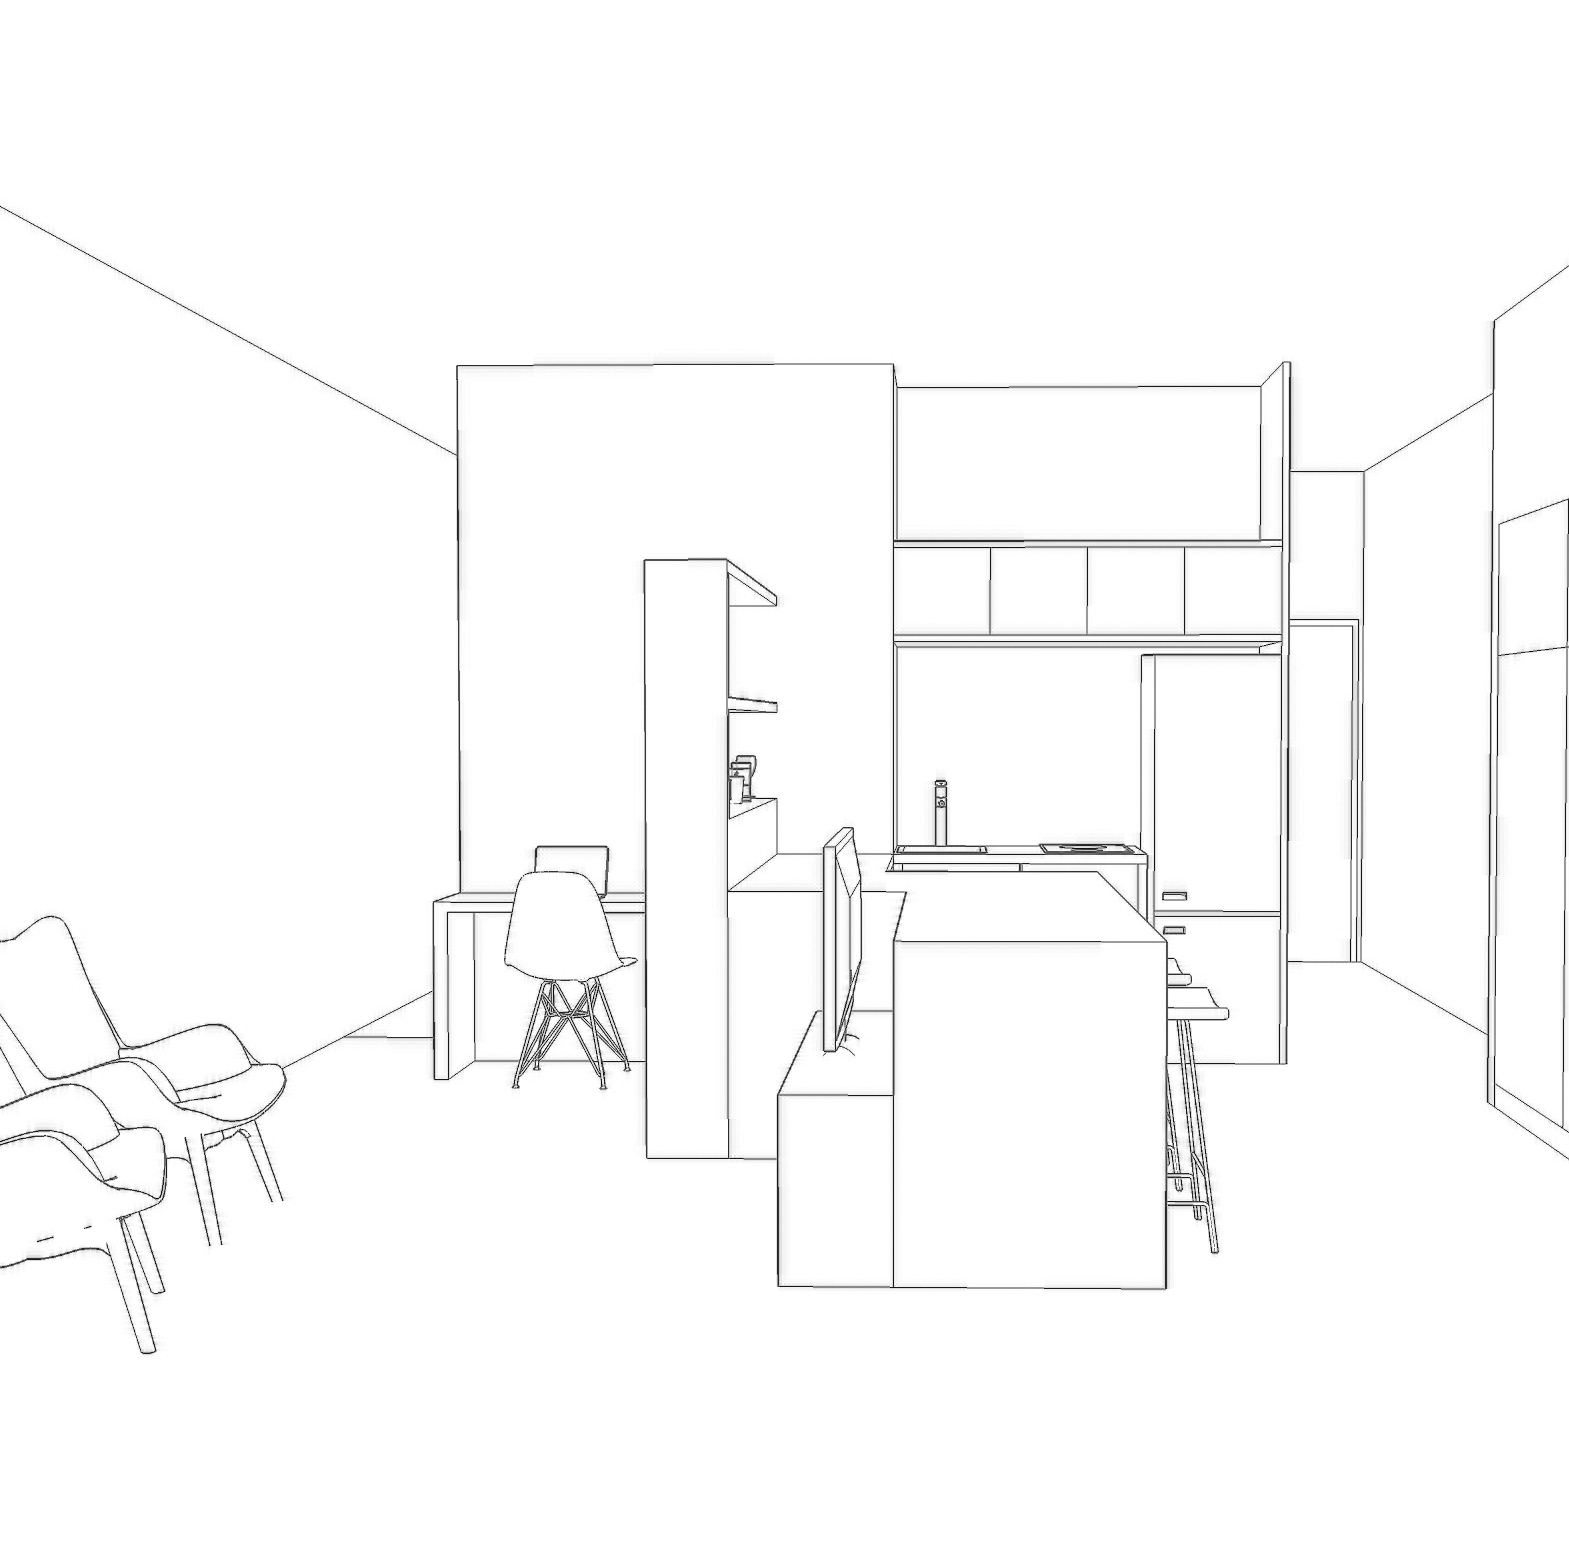 ilsa-mechiori-interior-design-drawing1.jpg